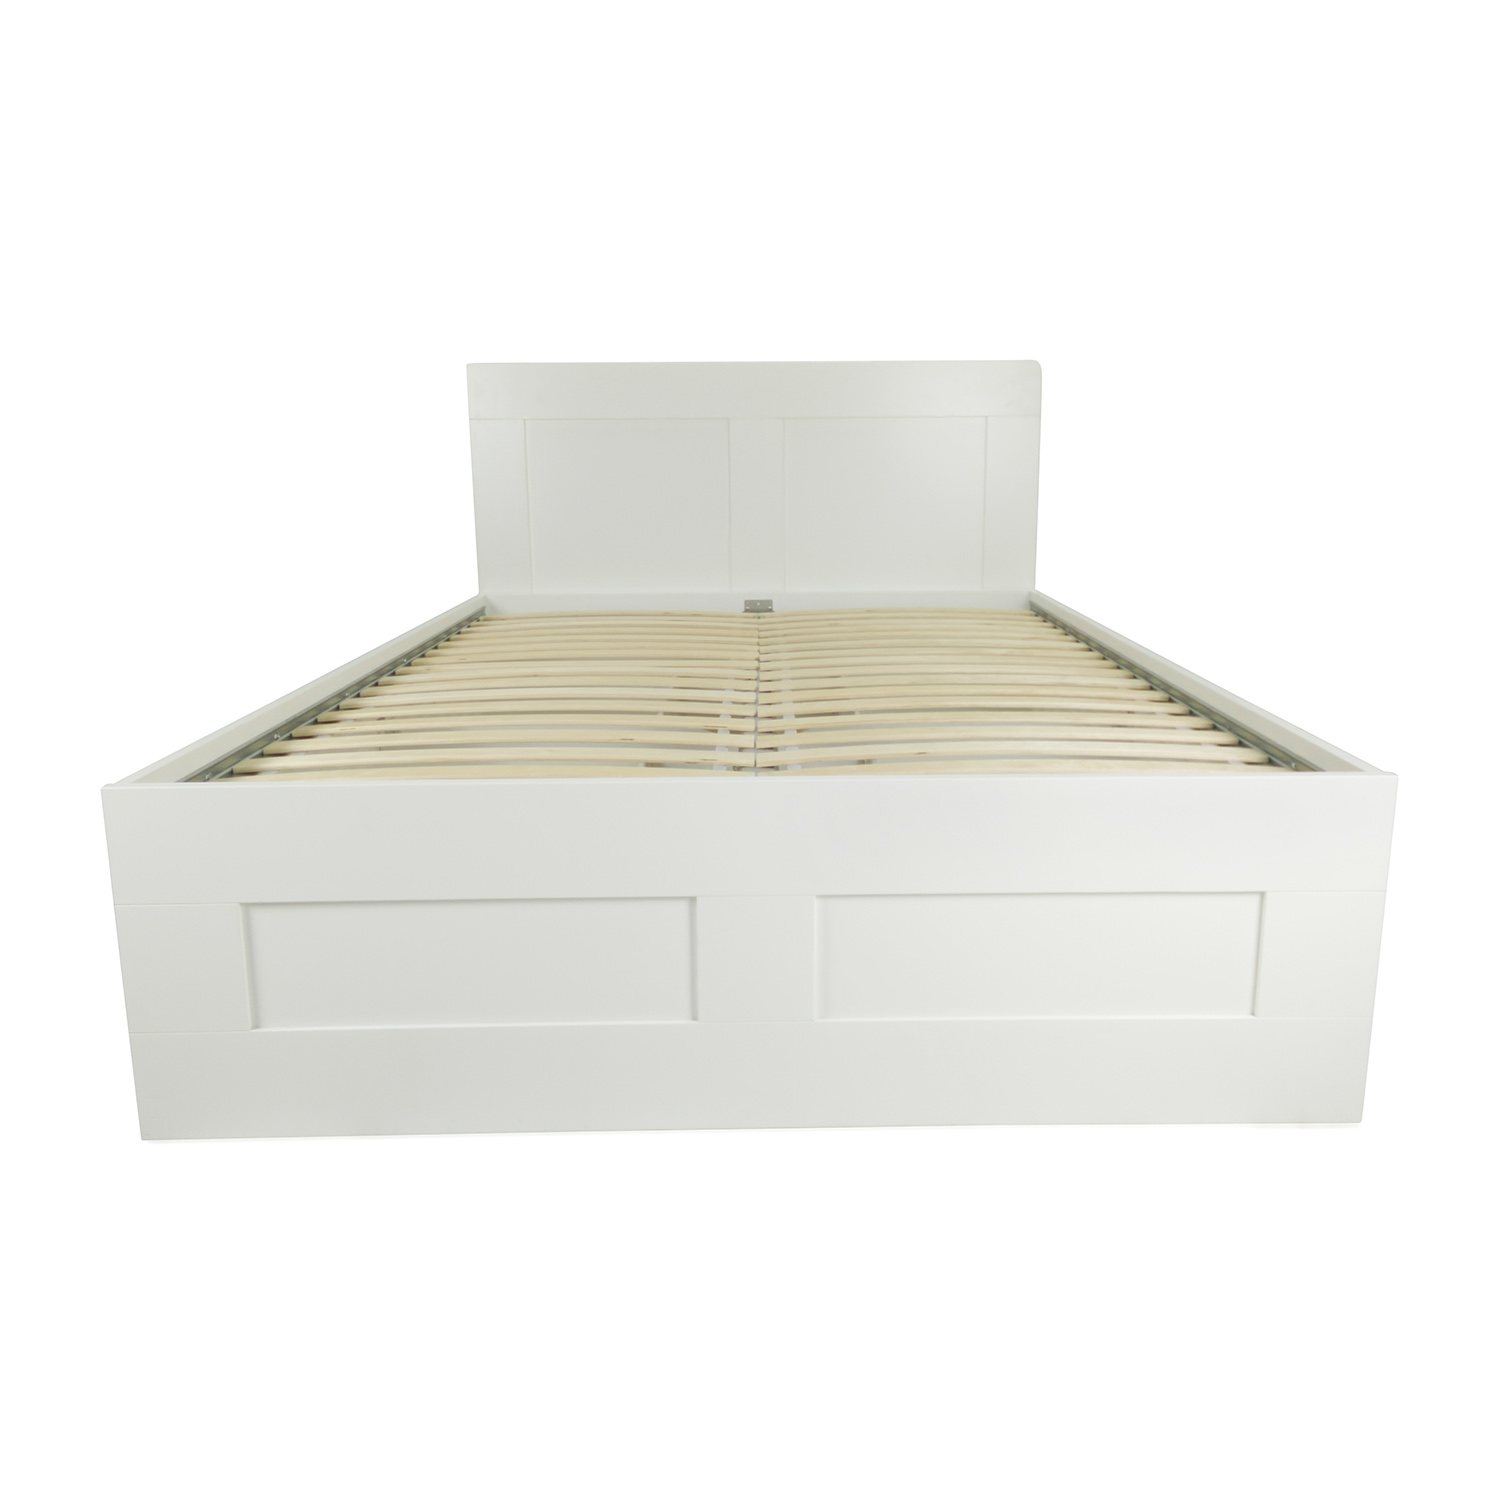 57% OFF - IKEA IKEA Queen Size Bed Frame / Beds